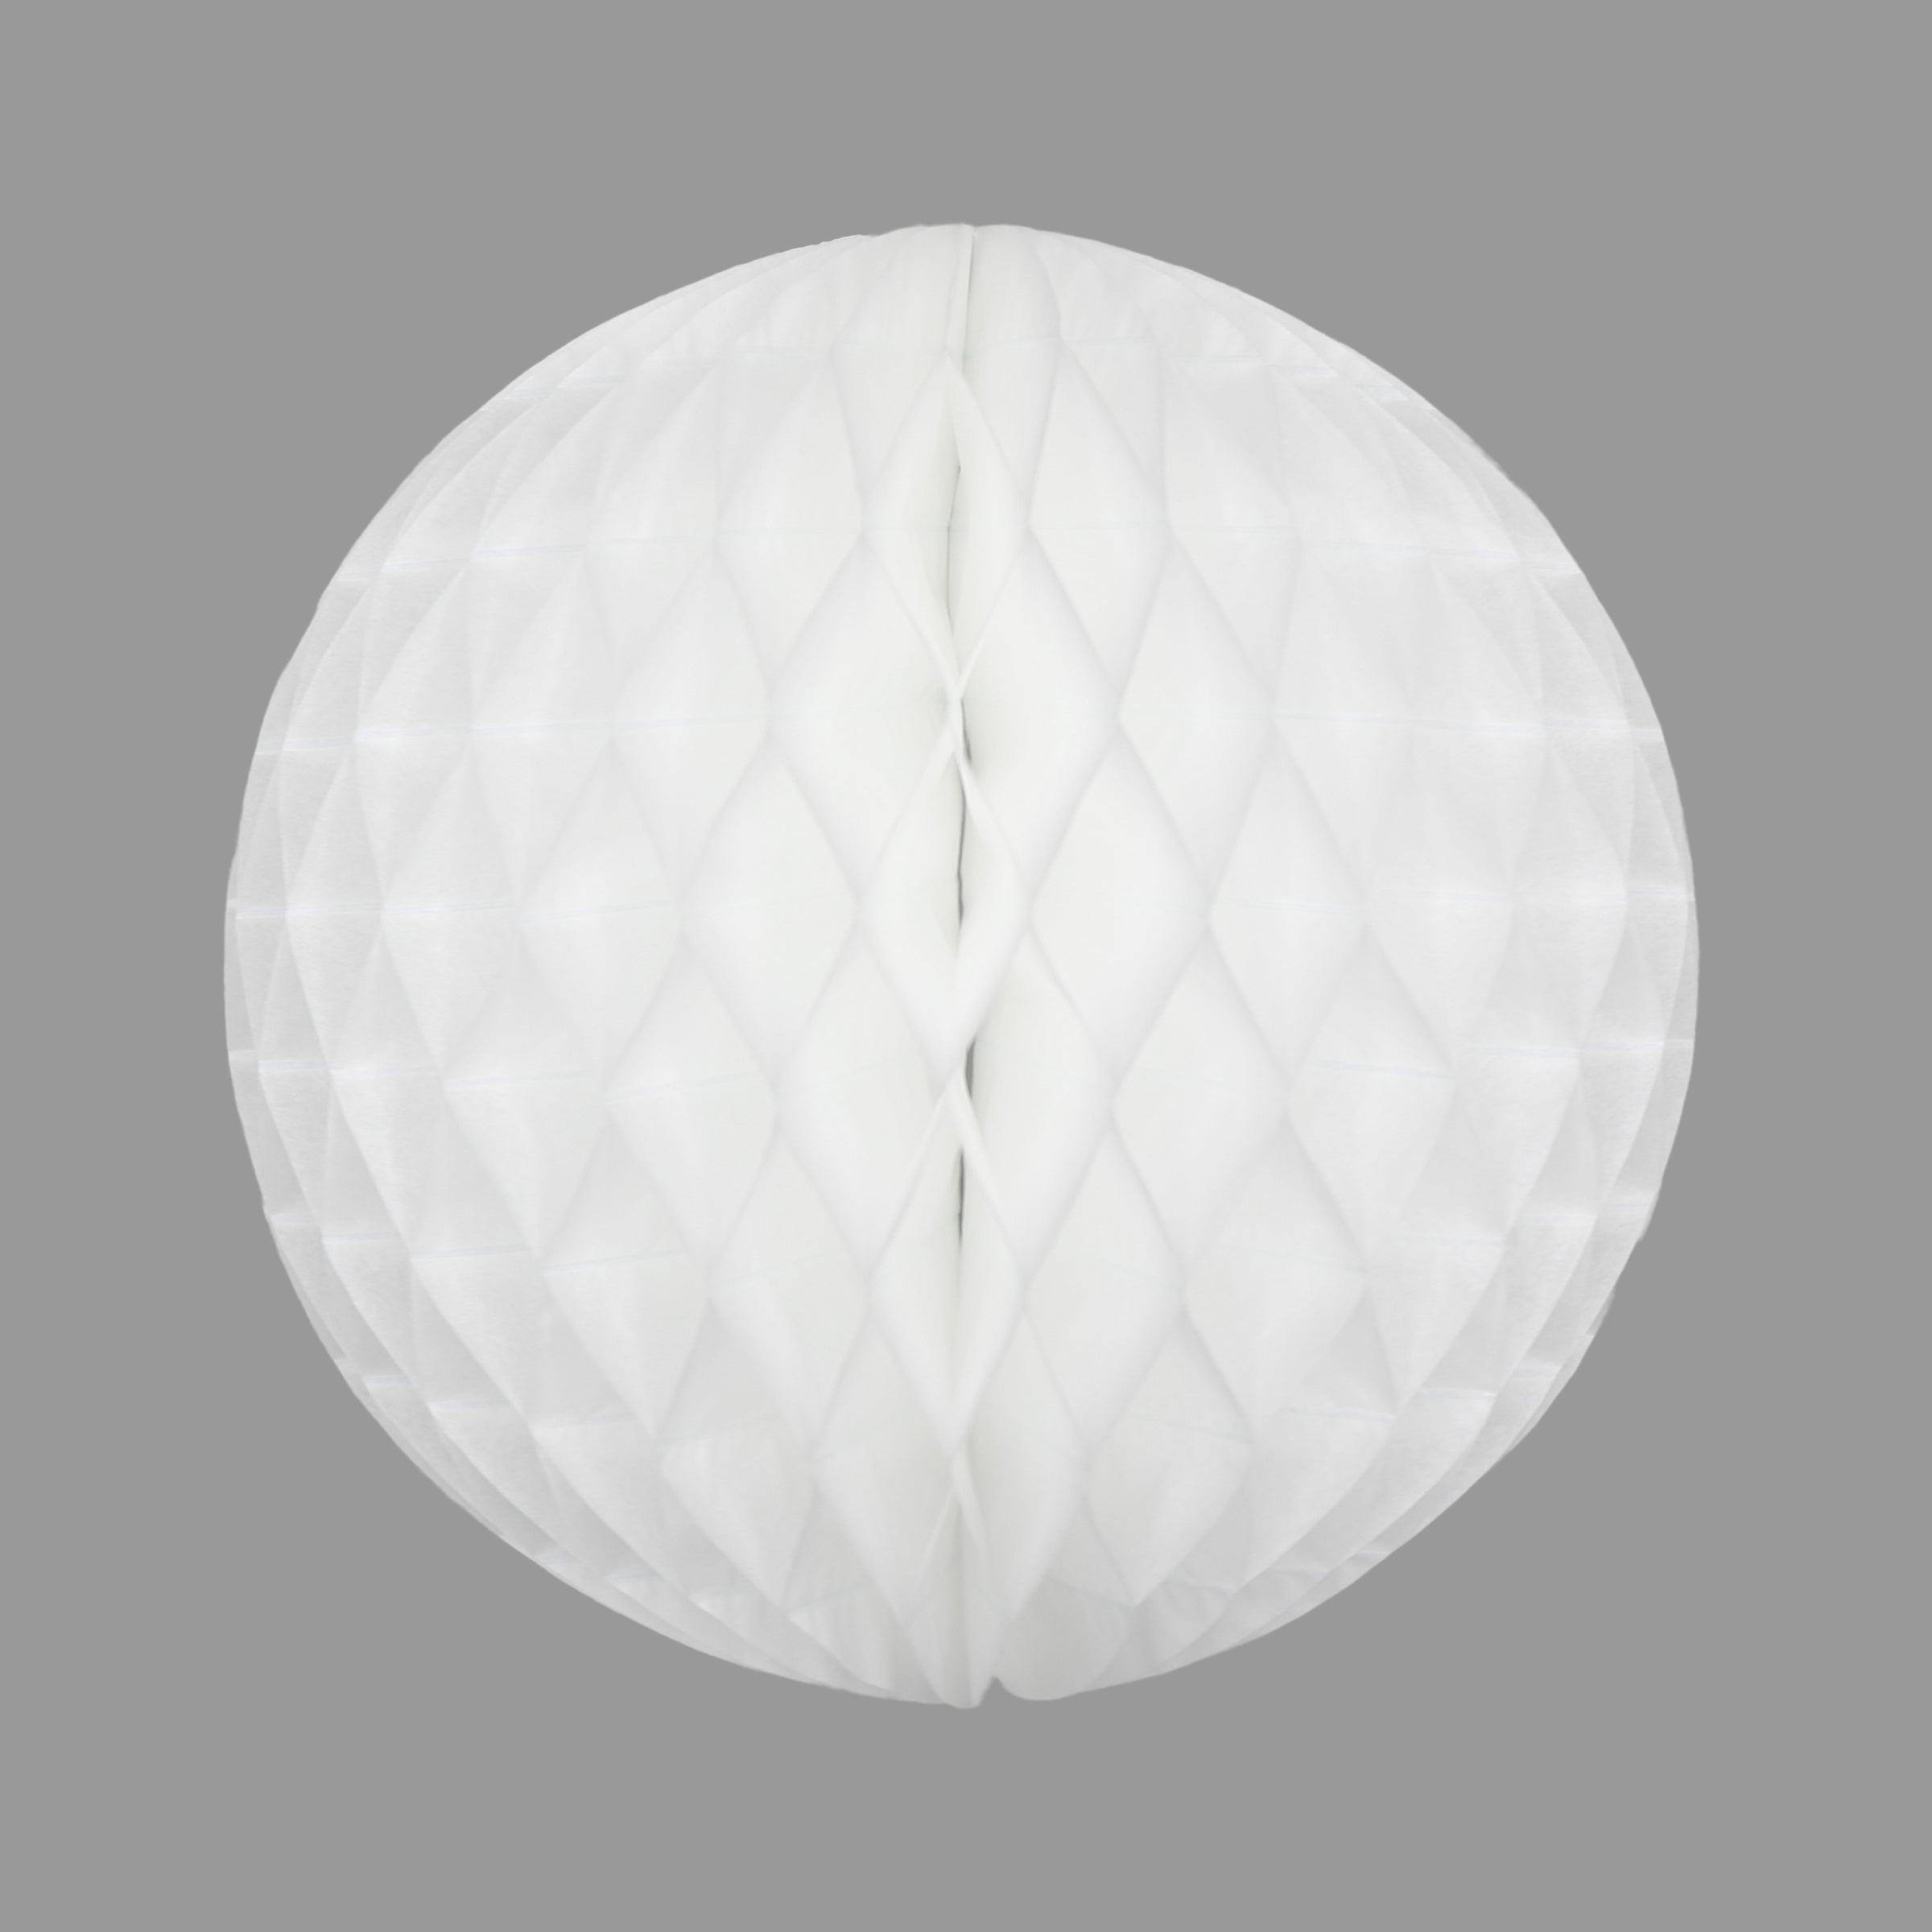 Honeycomb Ball, White